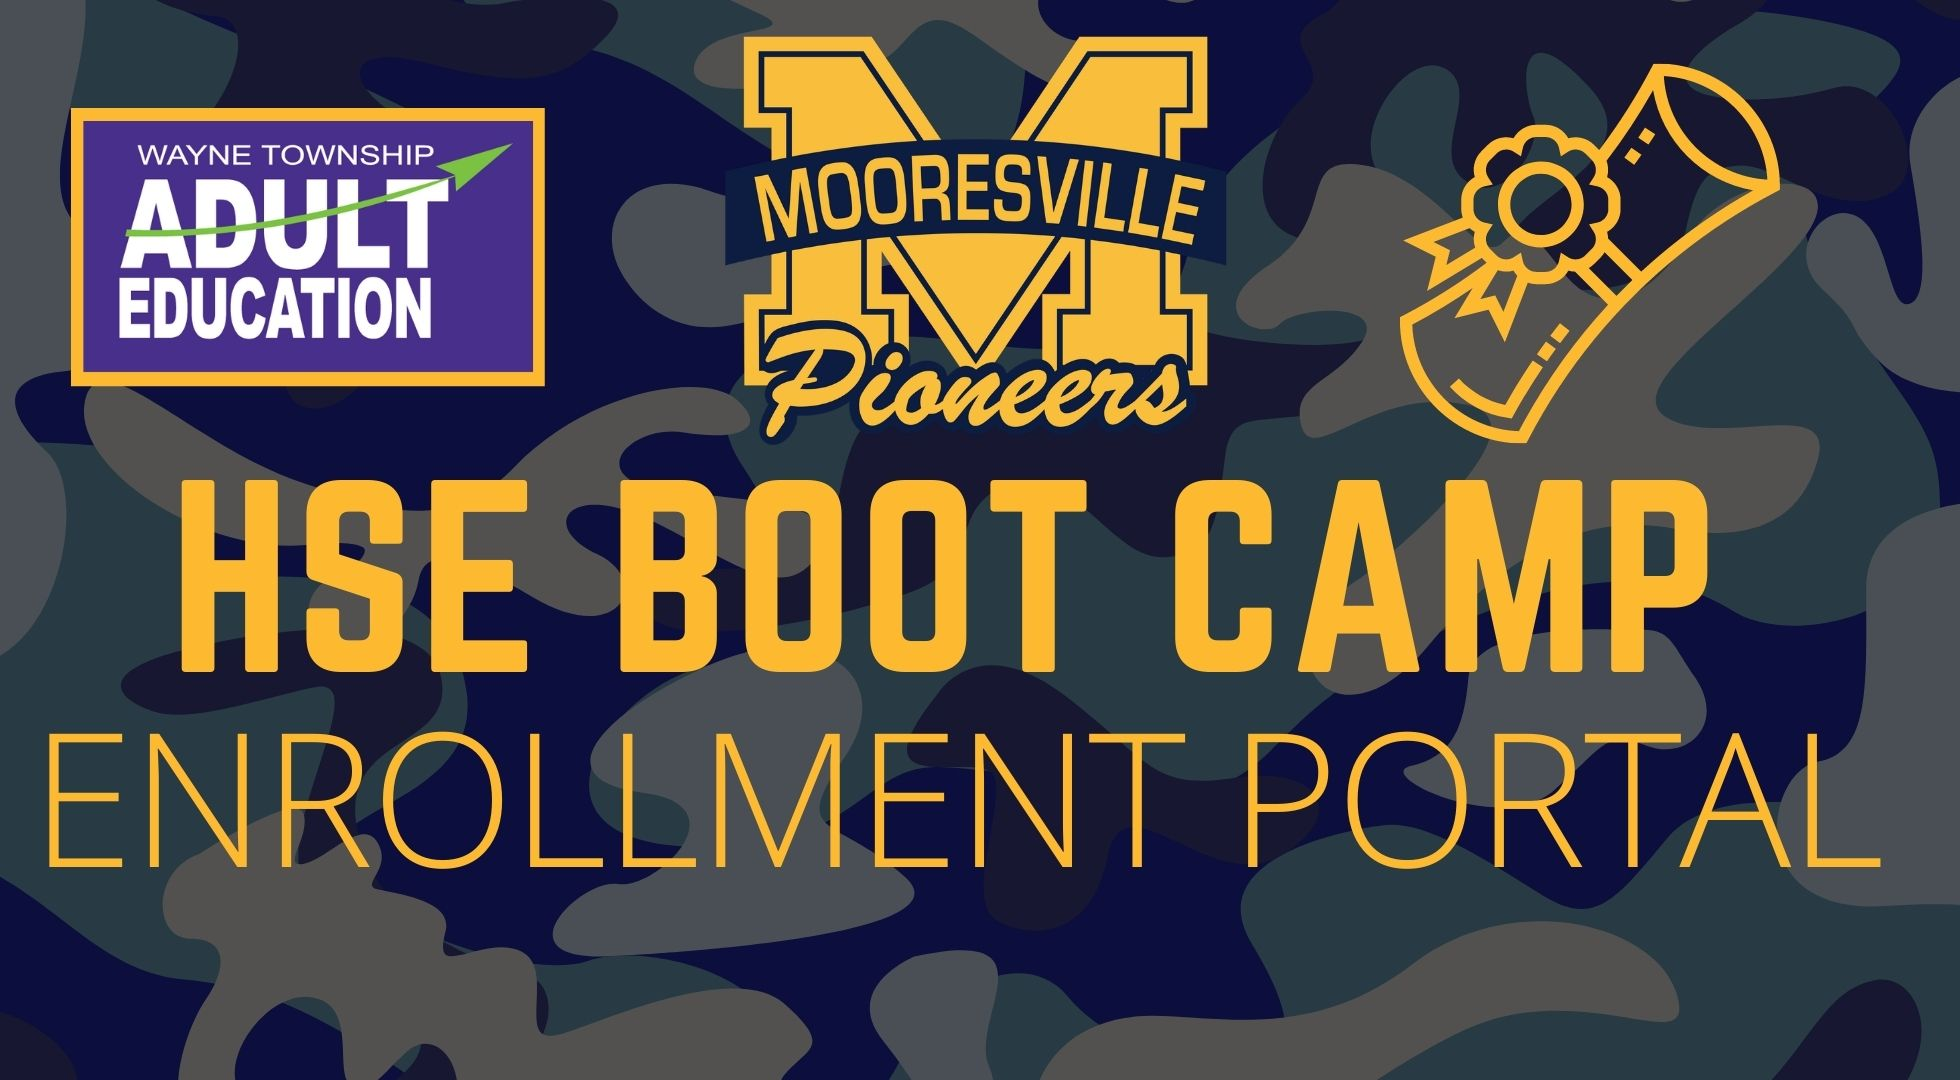 Mooresville Boot Camp Enrollment Portal